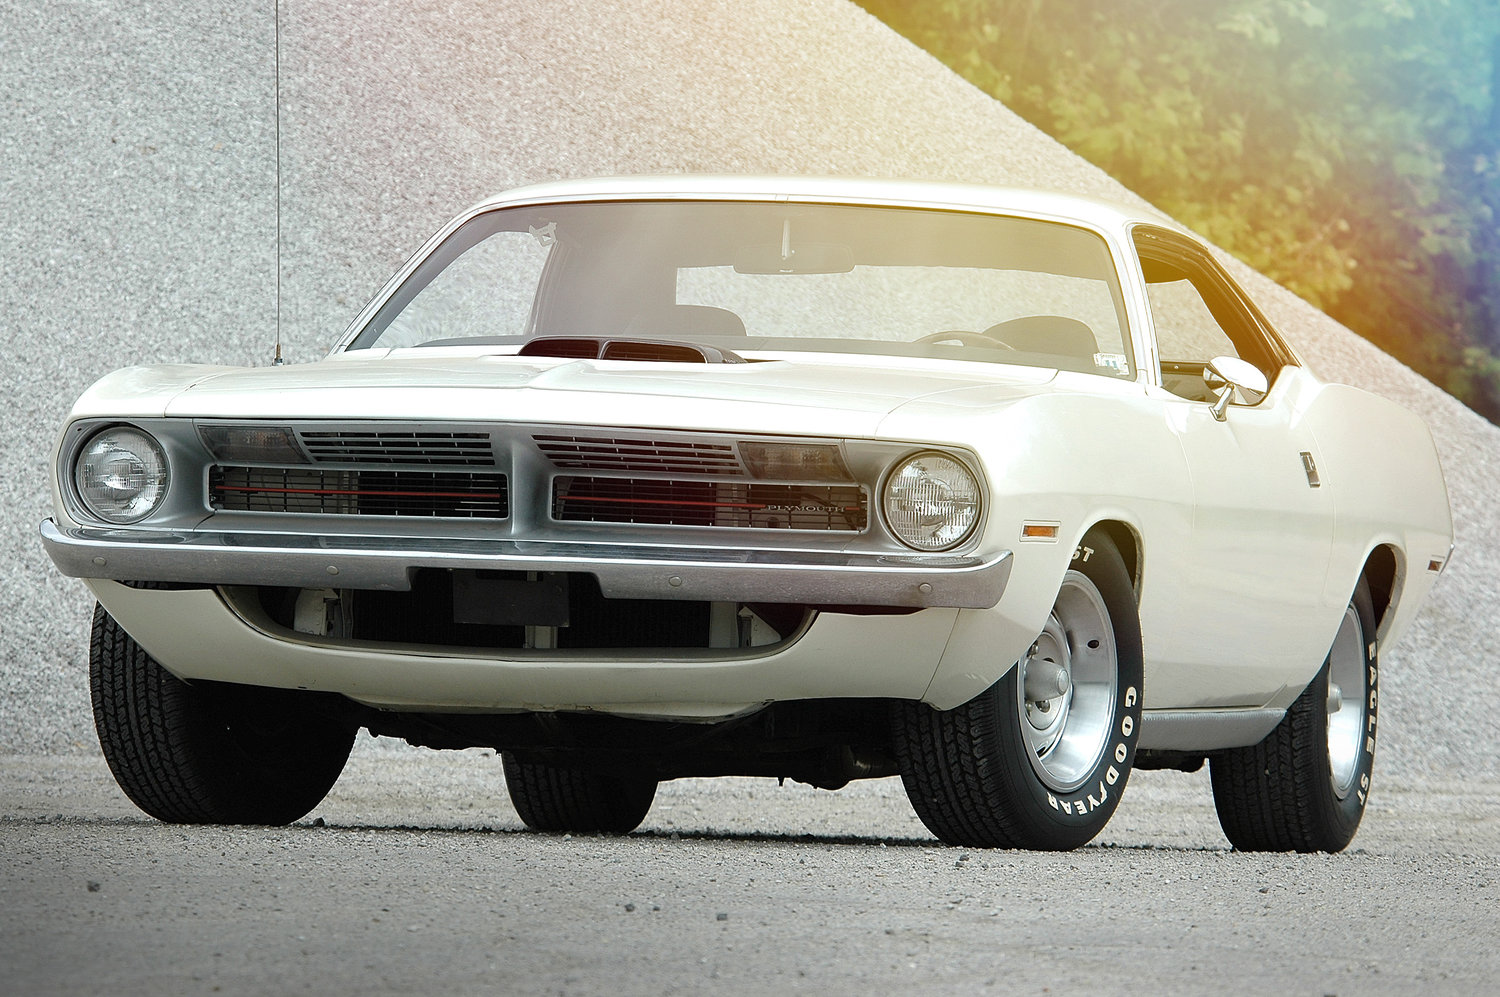 The First Hemi Cuda Ever. FOR SALE